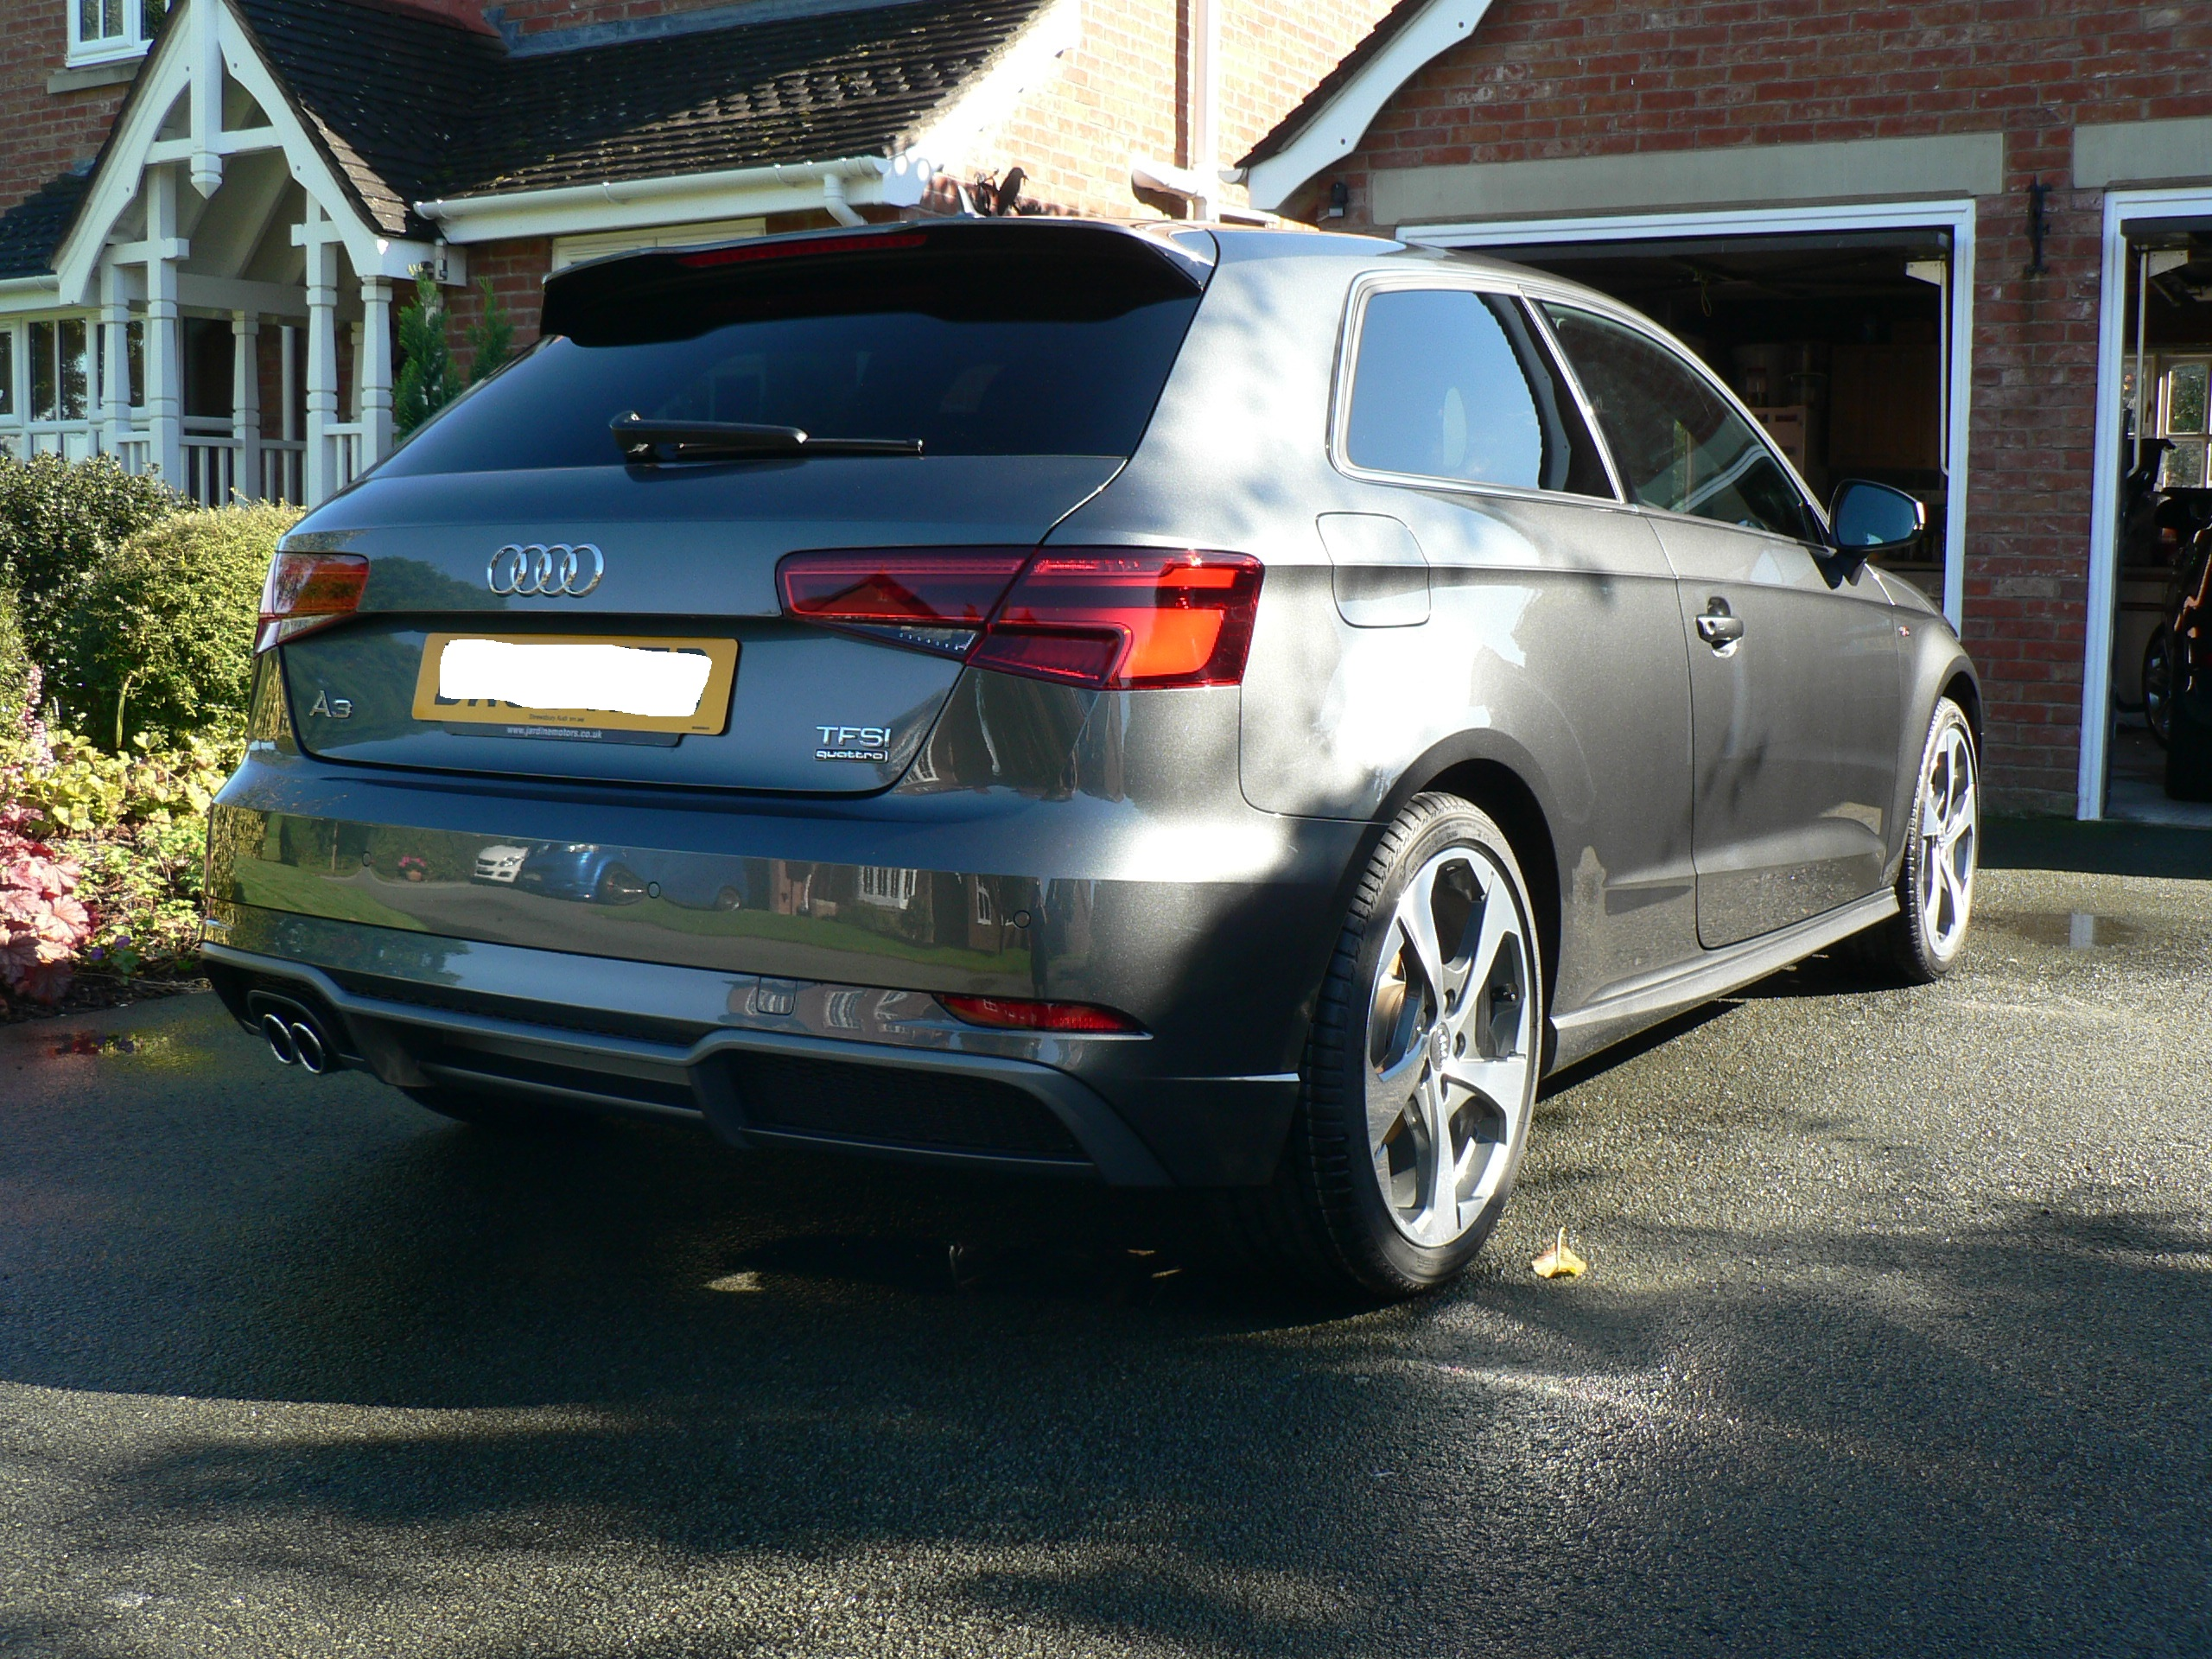 Facelift Audi A3 Hb S Line 2 0 Tfsi Quattro S Tronic 190ps In Daytona Grey Audi Sport Net